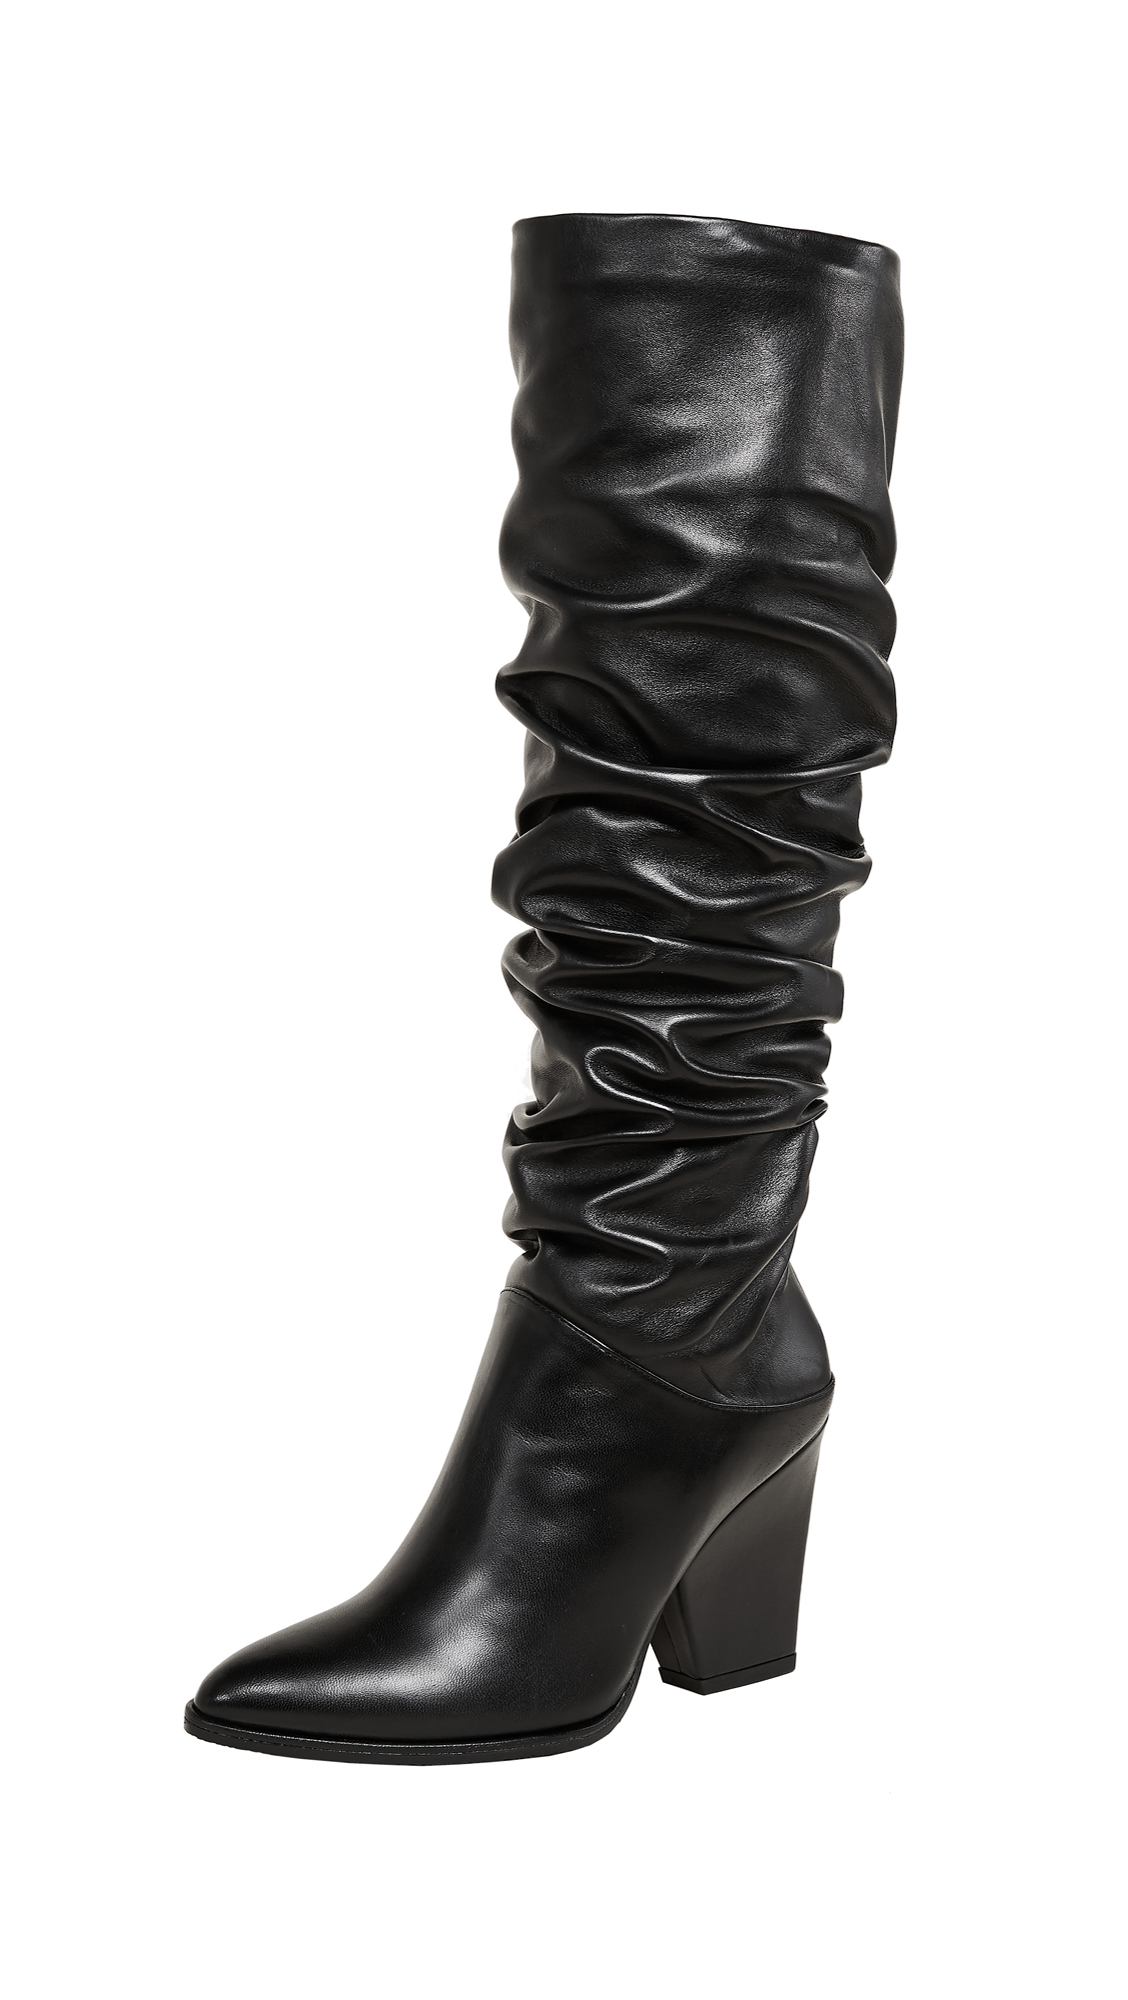 Stuart Weitzman Smashing Knee High Boots